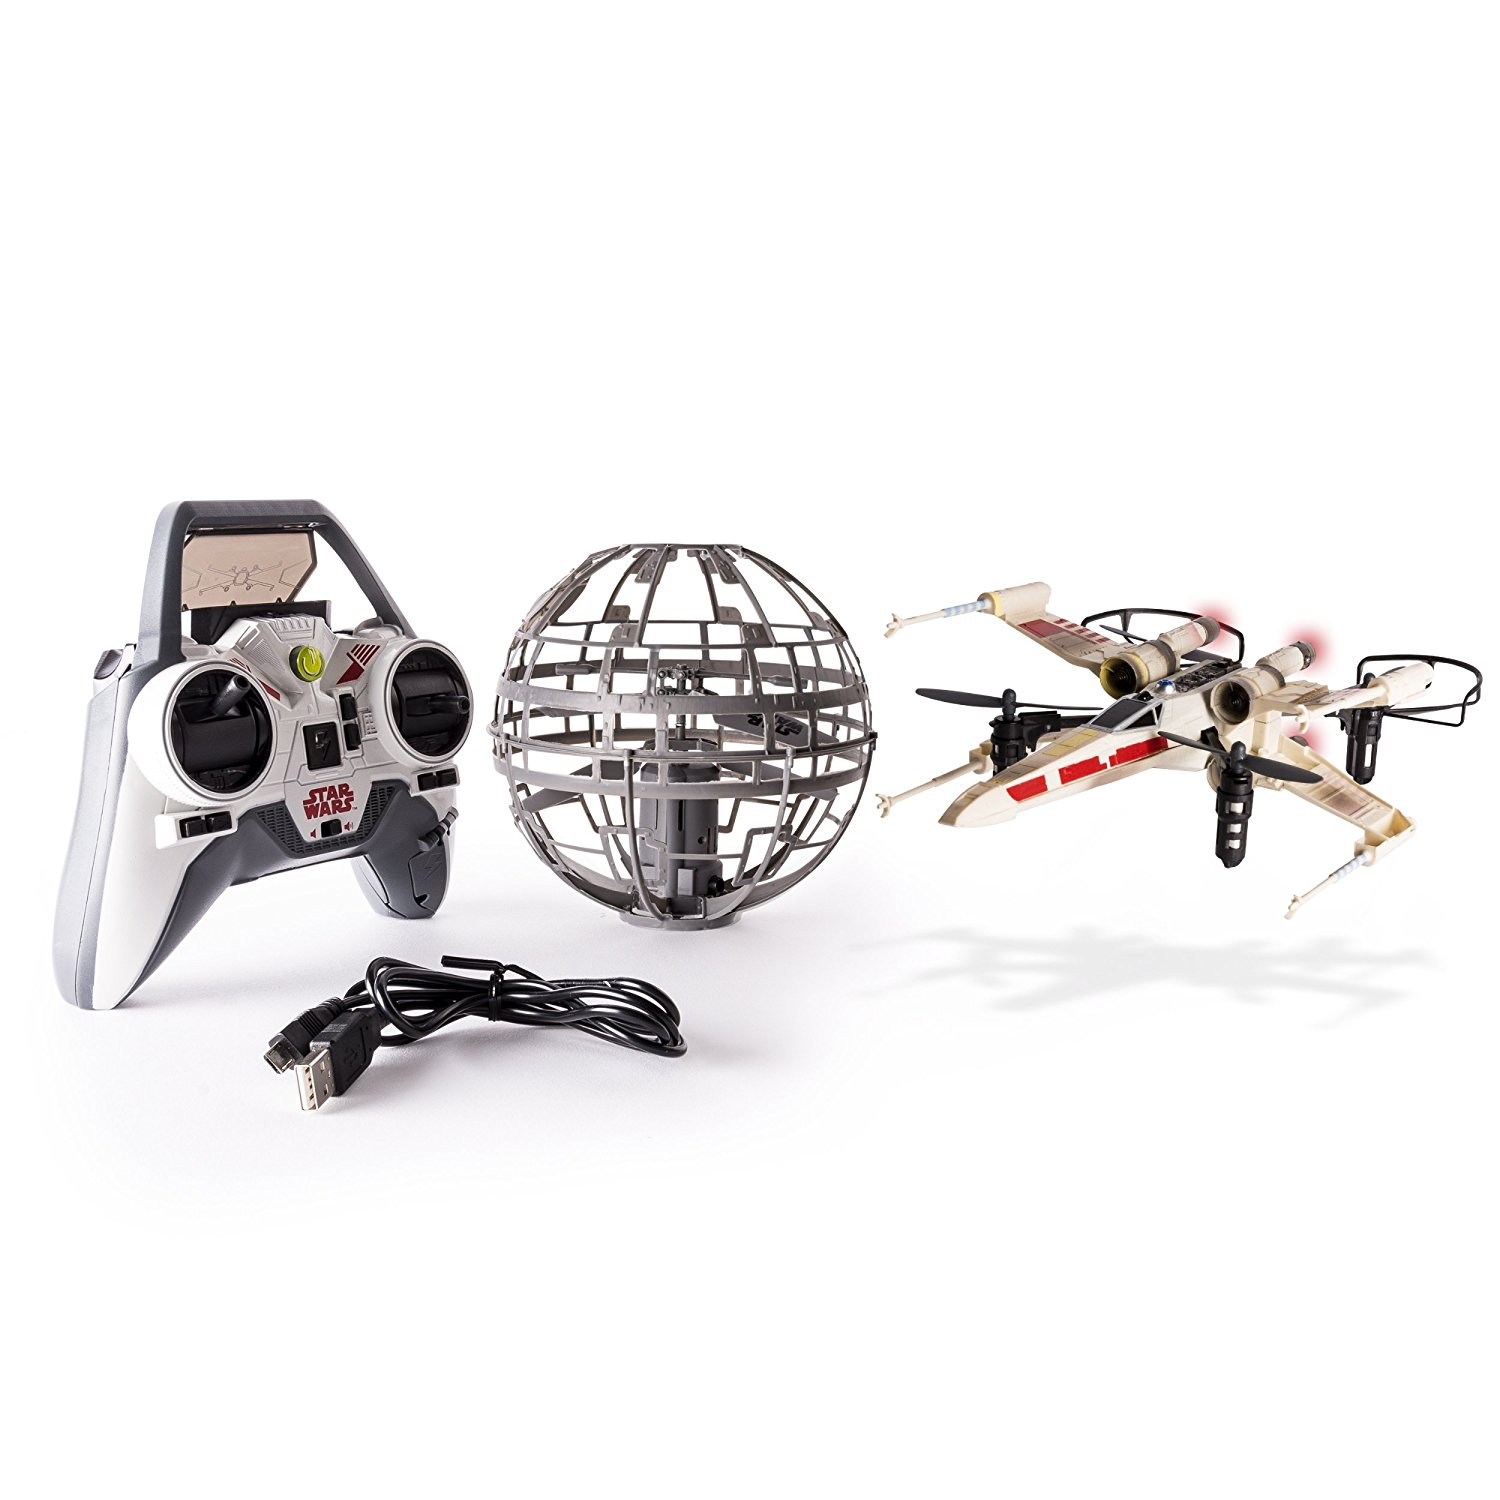 Star Wars X-wing and death Star drone set